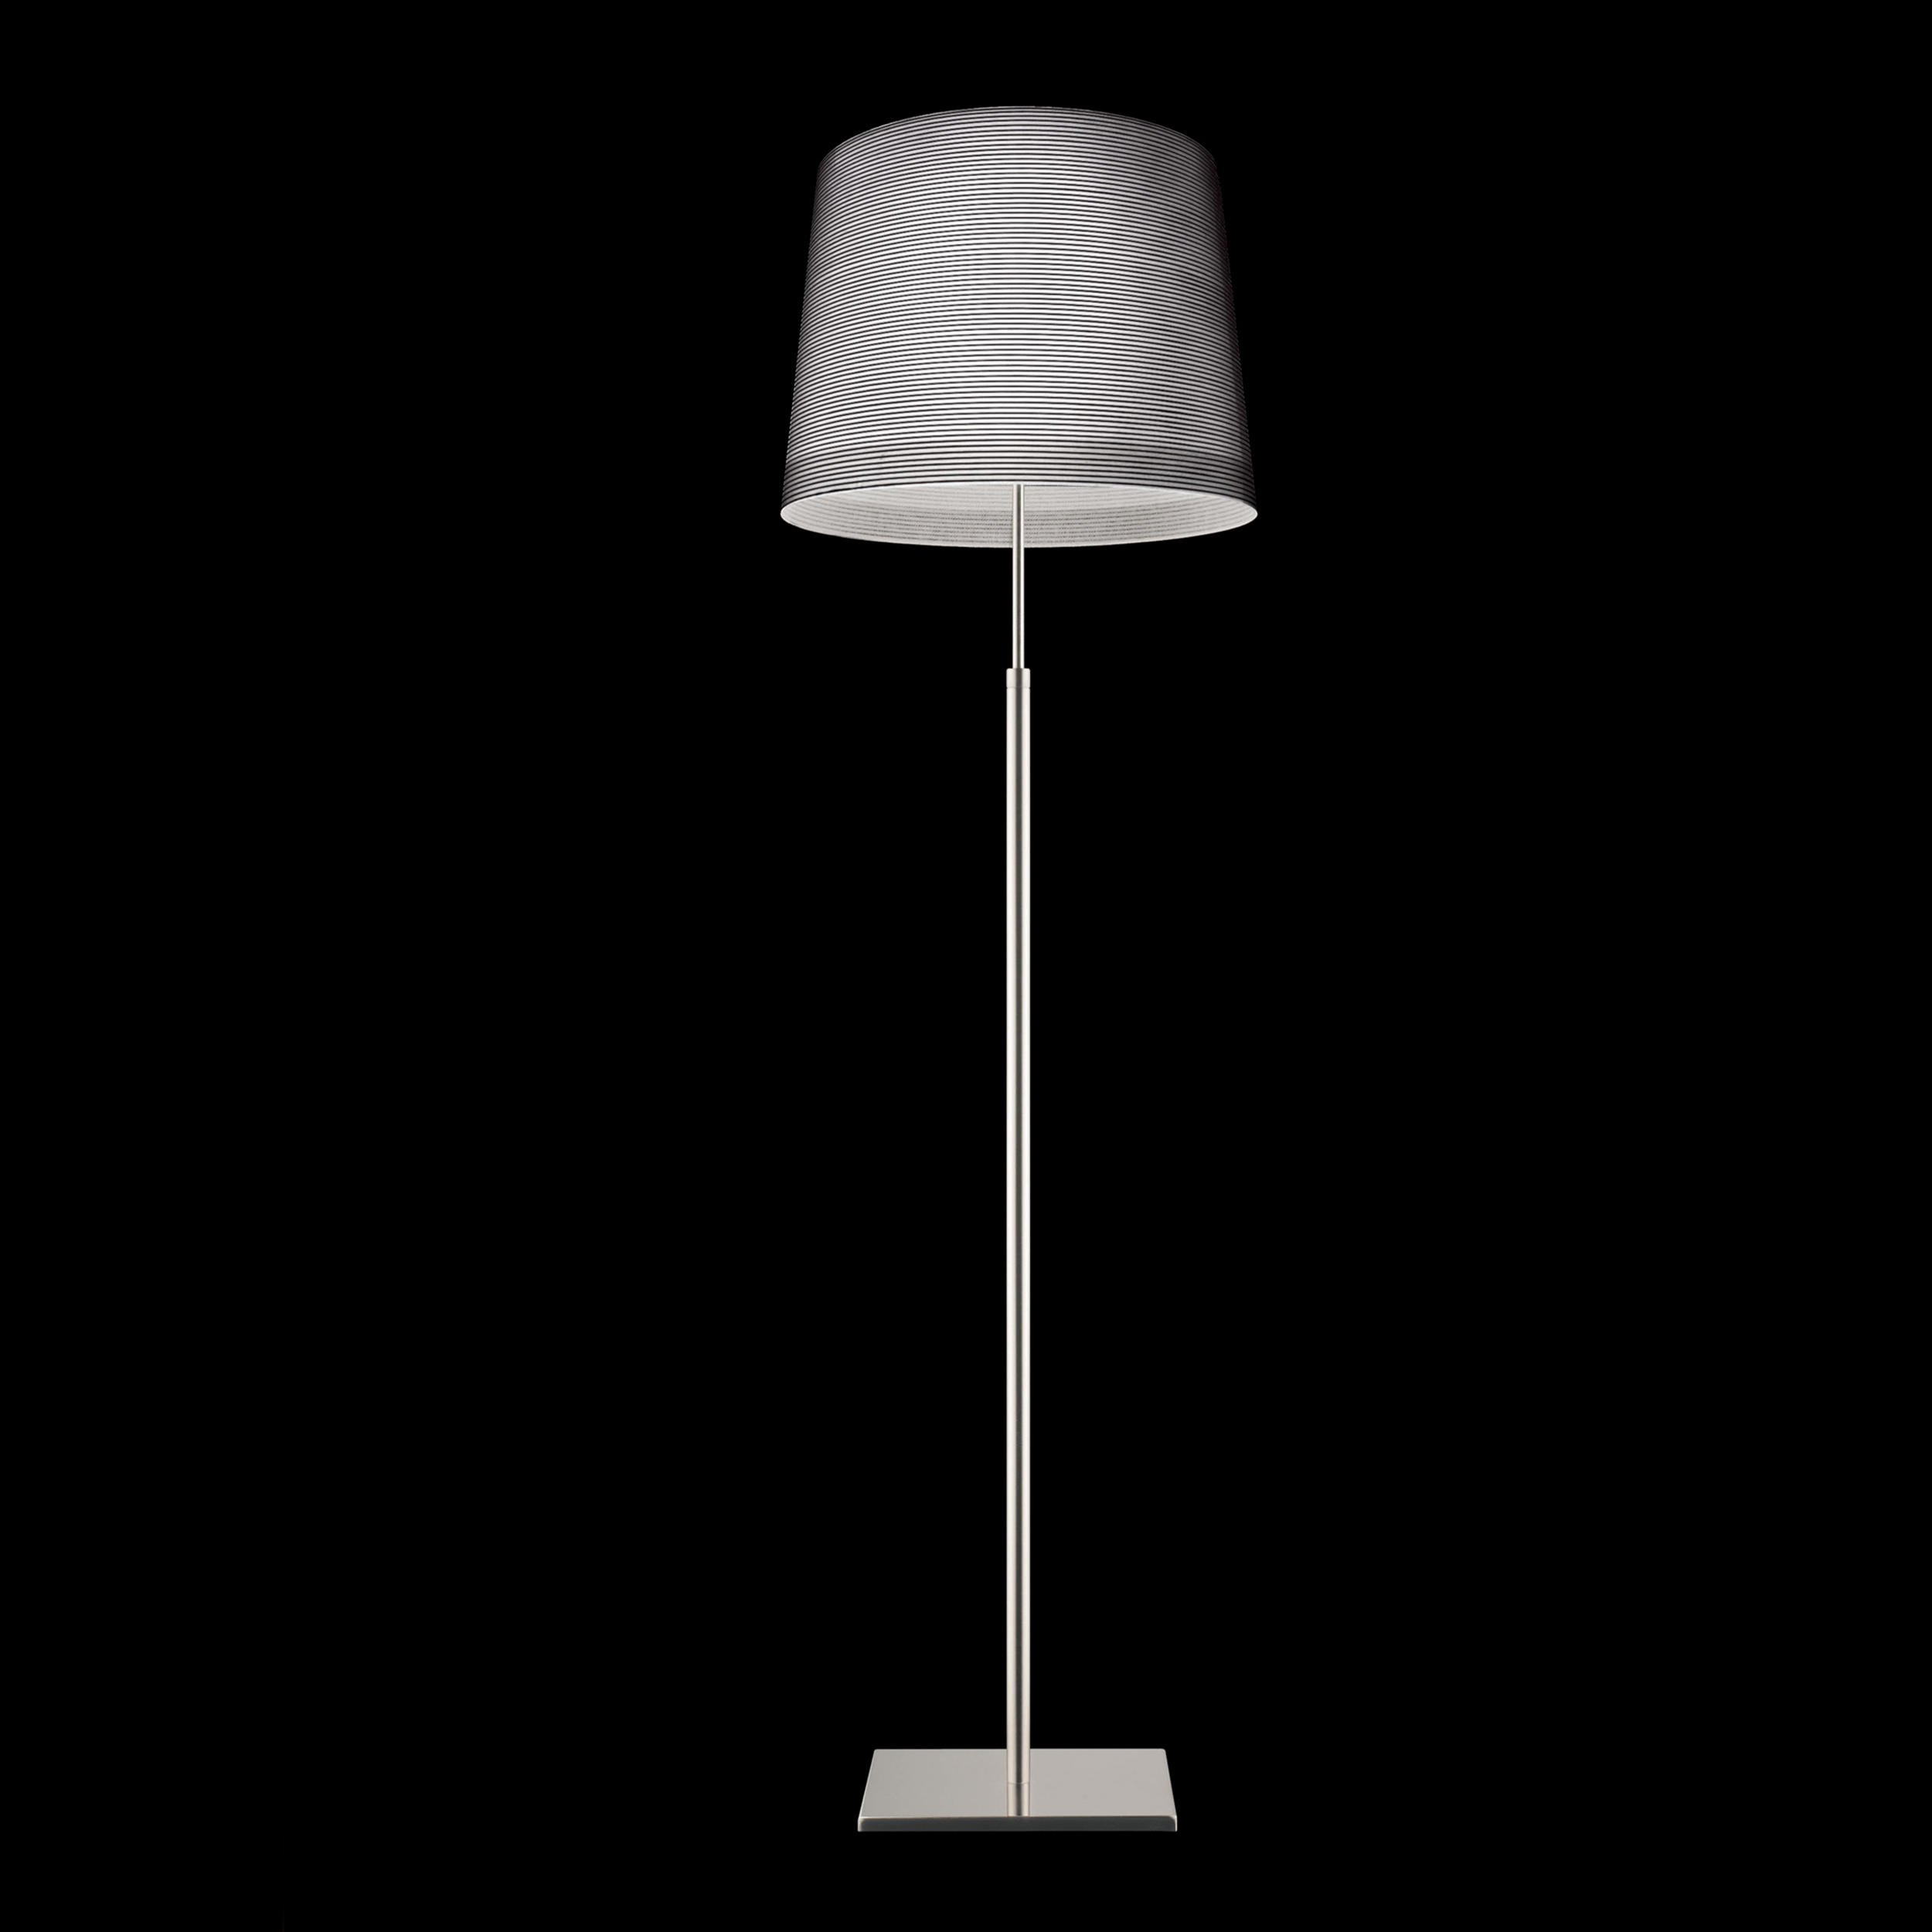 Giga-lite Floor Lamp